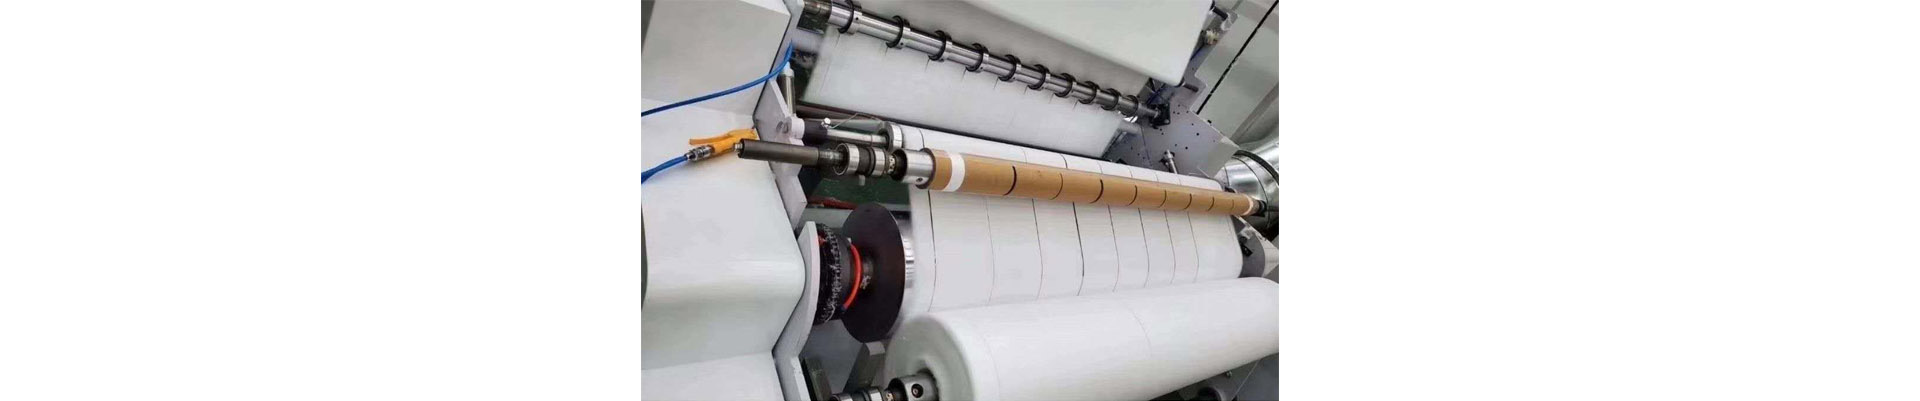 Meltblown non-woven fabric machine